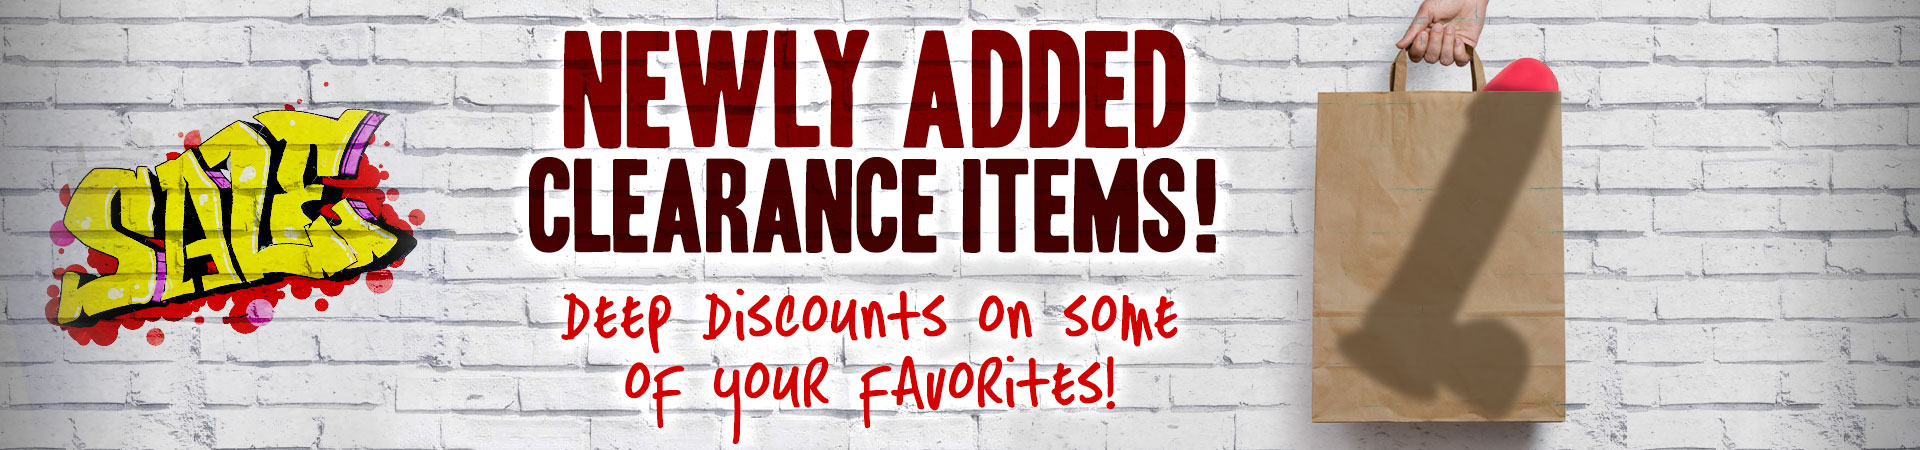 Newly Added Clearance Items!